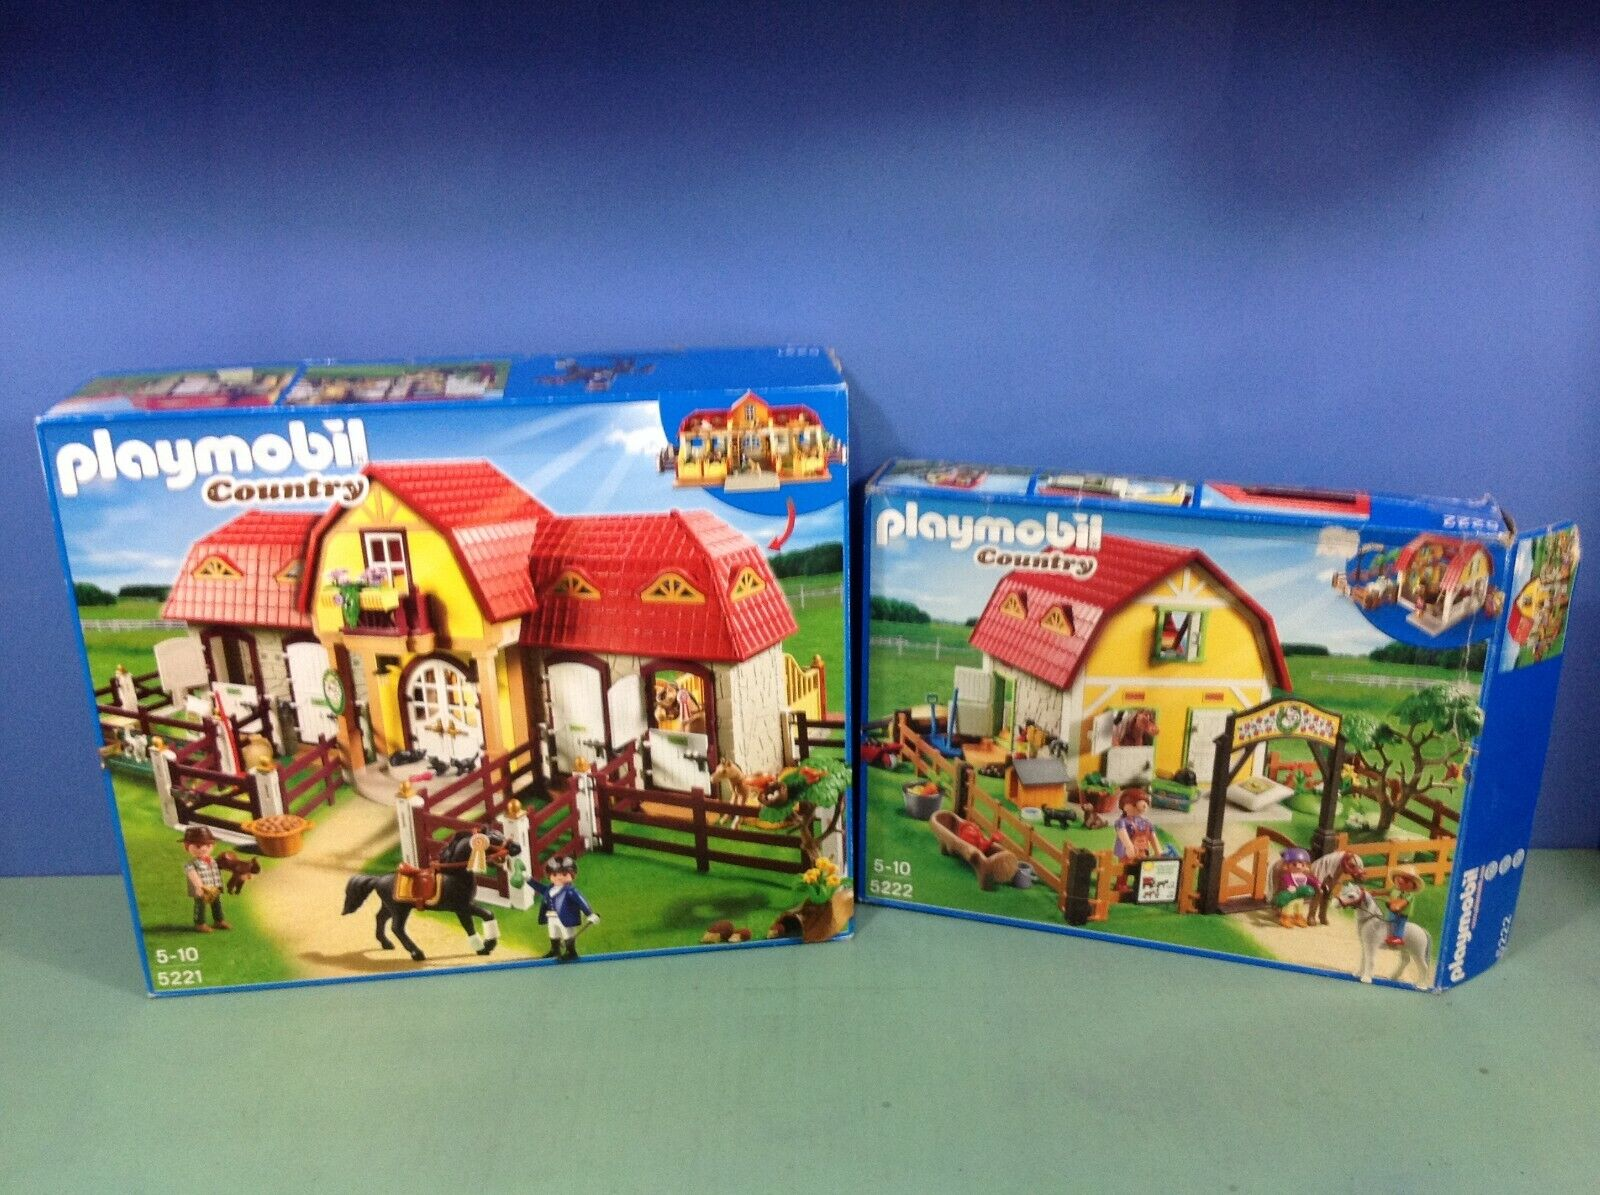 (O5221.5) playmobil grand poney ranch ref 5221 + extension ref 5222 boites cplts